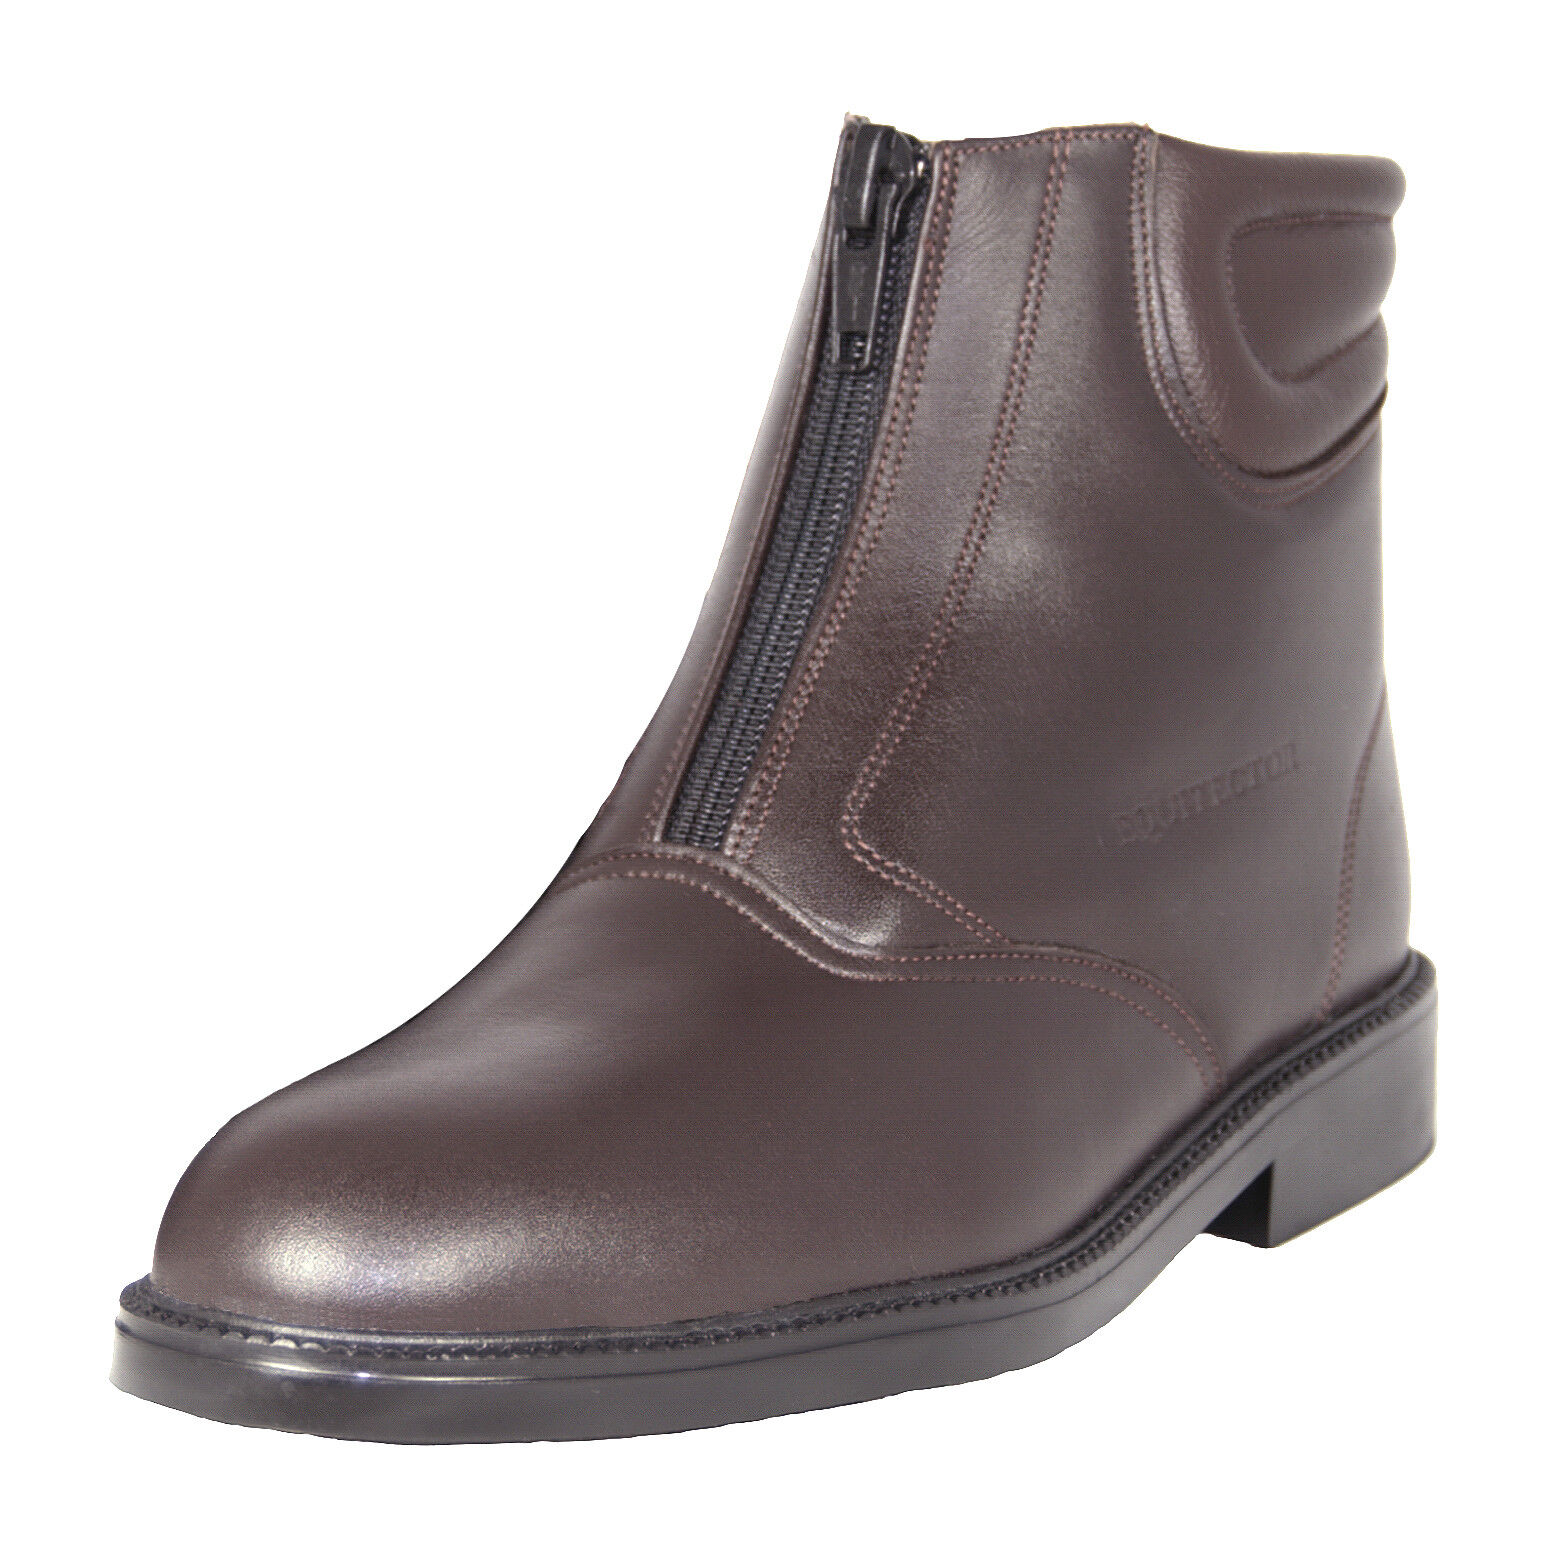 Equitector Equi-maestro riding yard boots sizes 3-8